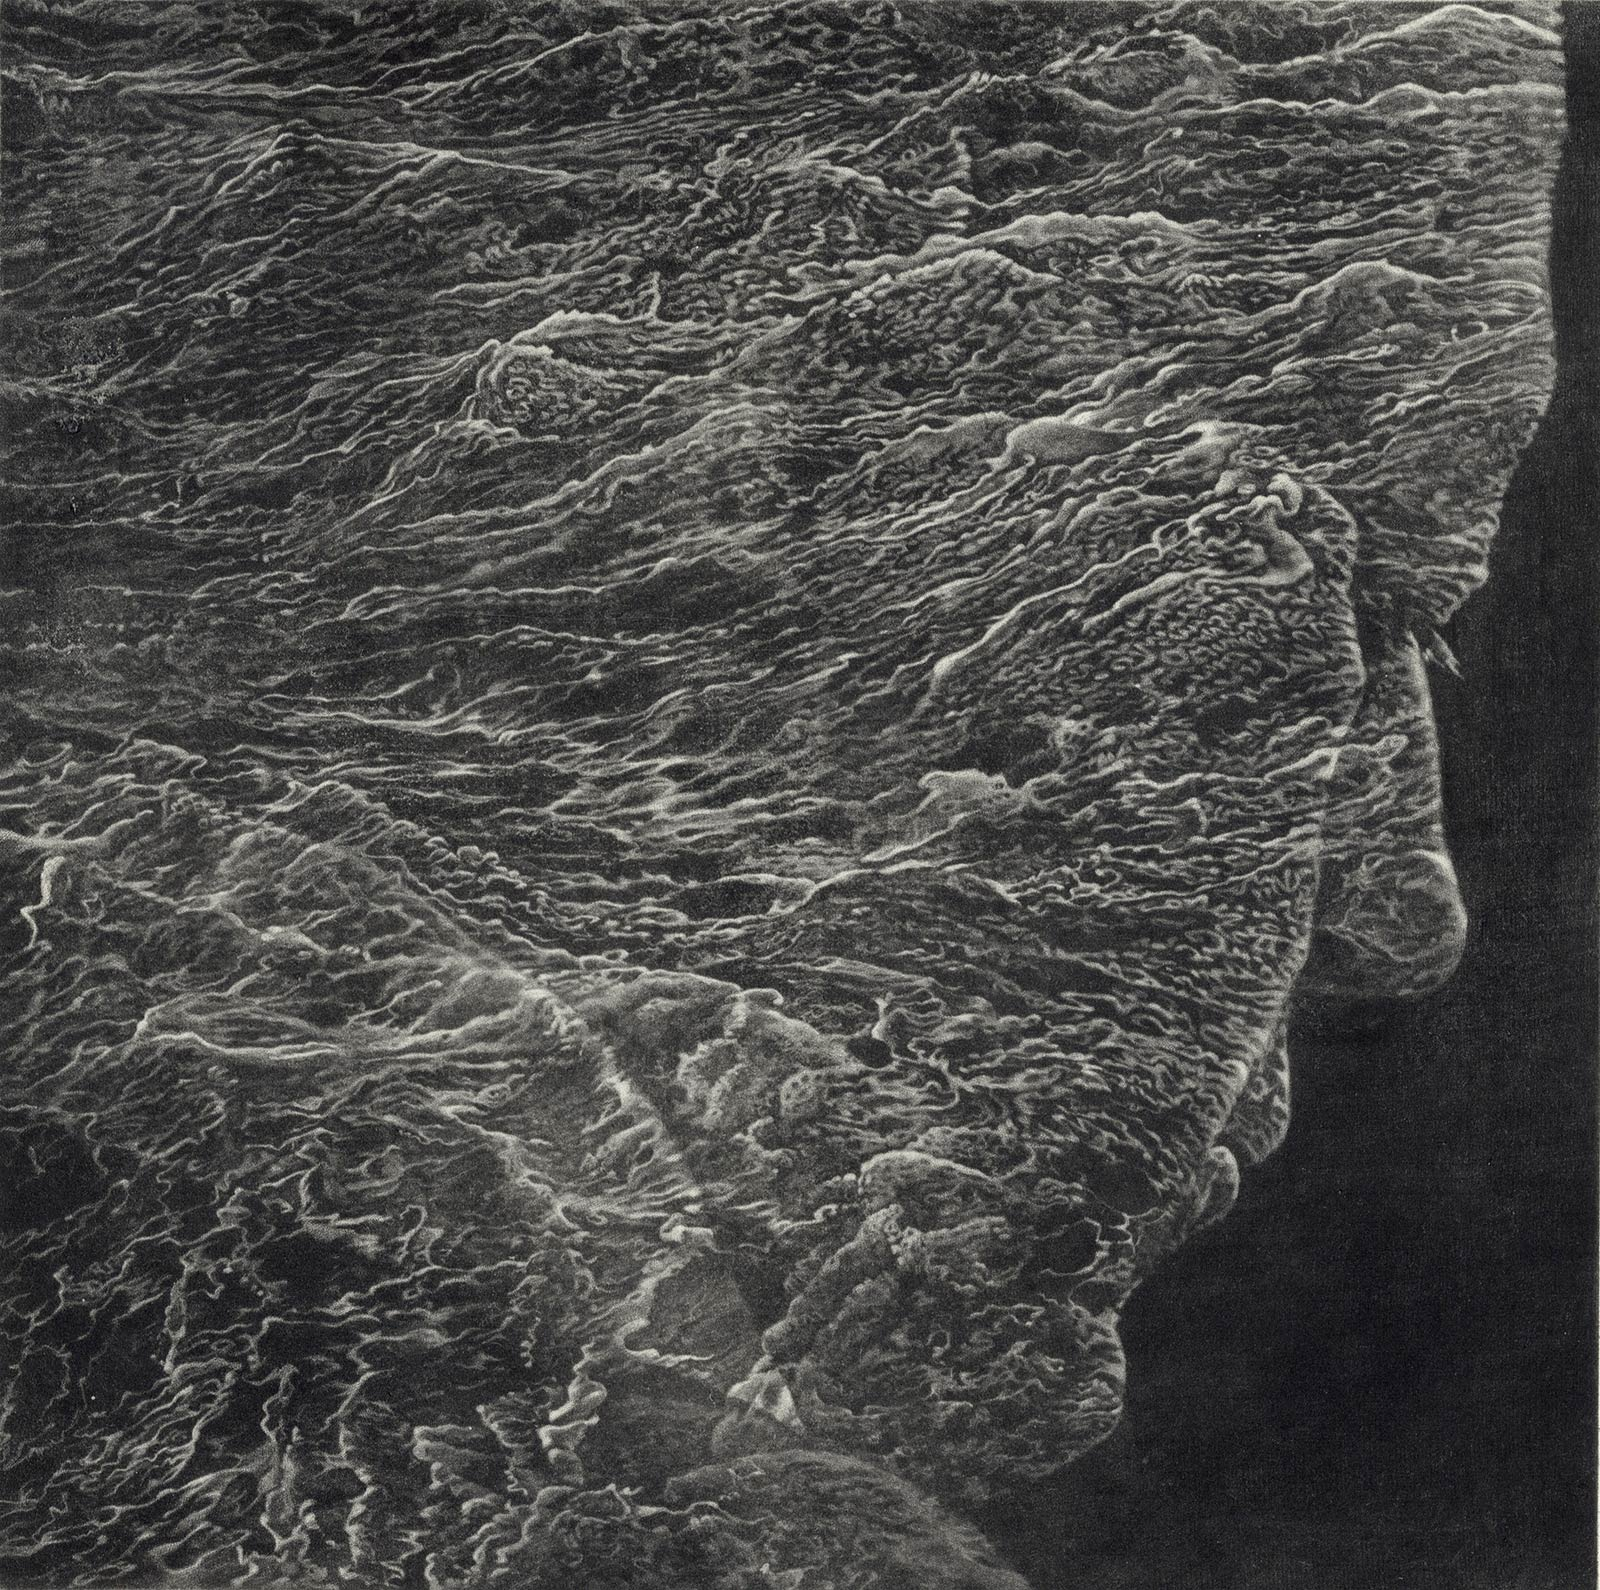 face of a man in profile with overlaying waves by Art Werger